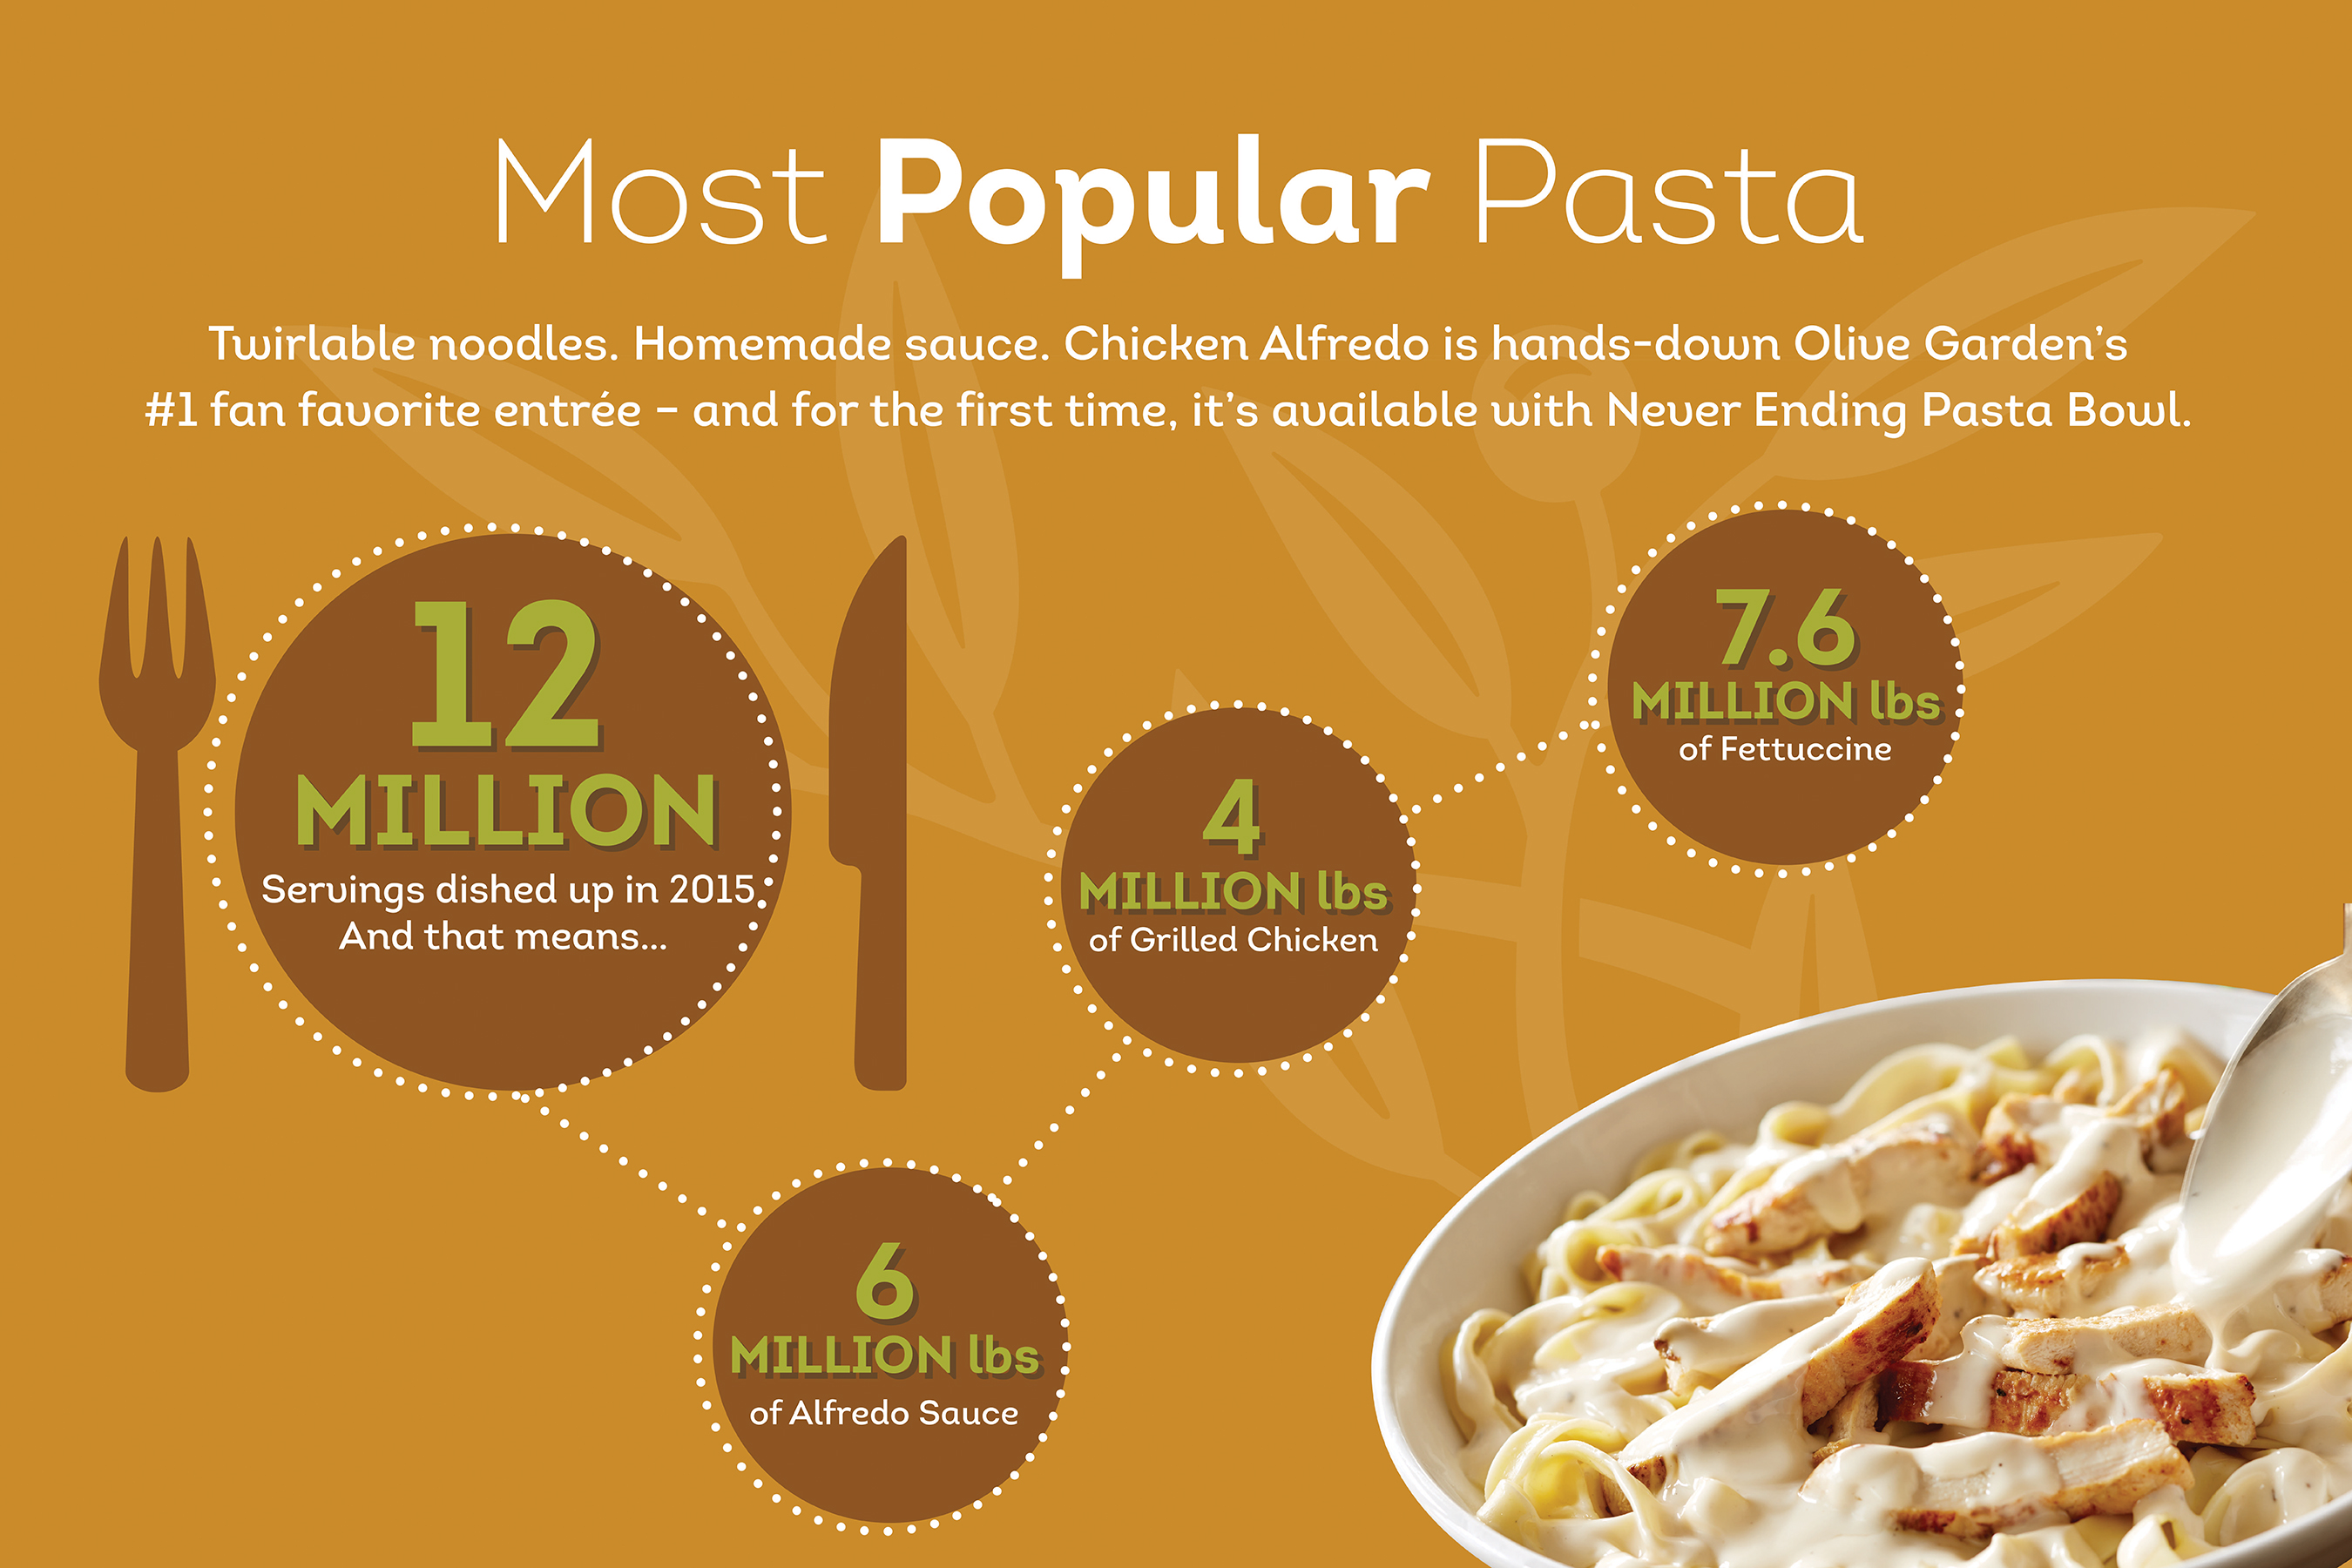 Olive Garden 39 S Never Ending Pasta Bowl Returns With Addition Of Best Selling Entr E Chicken Alfredo